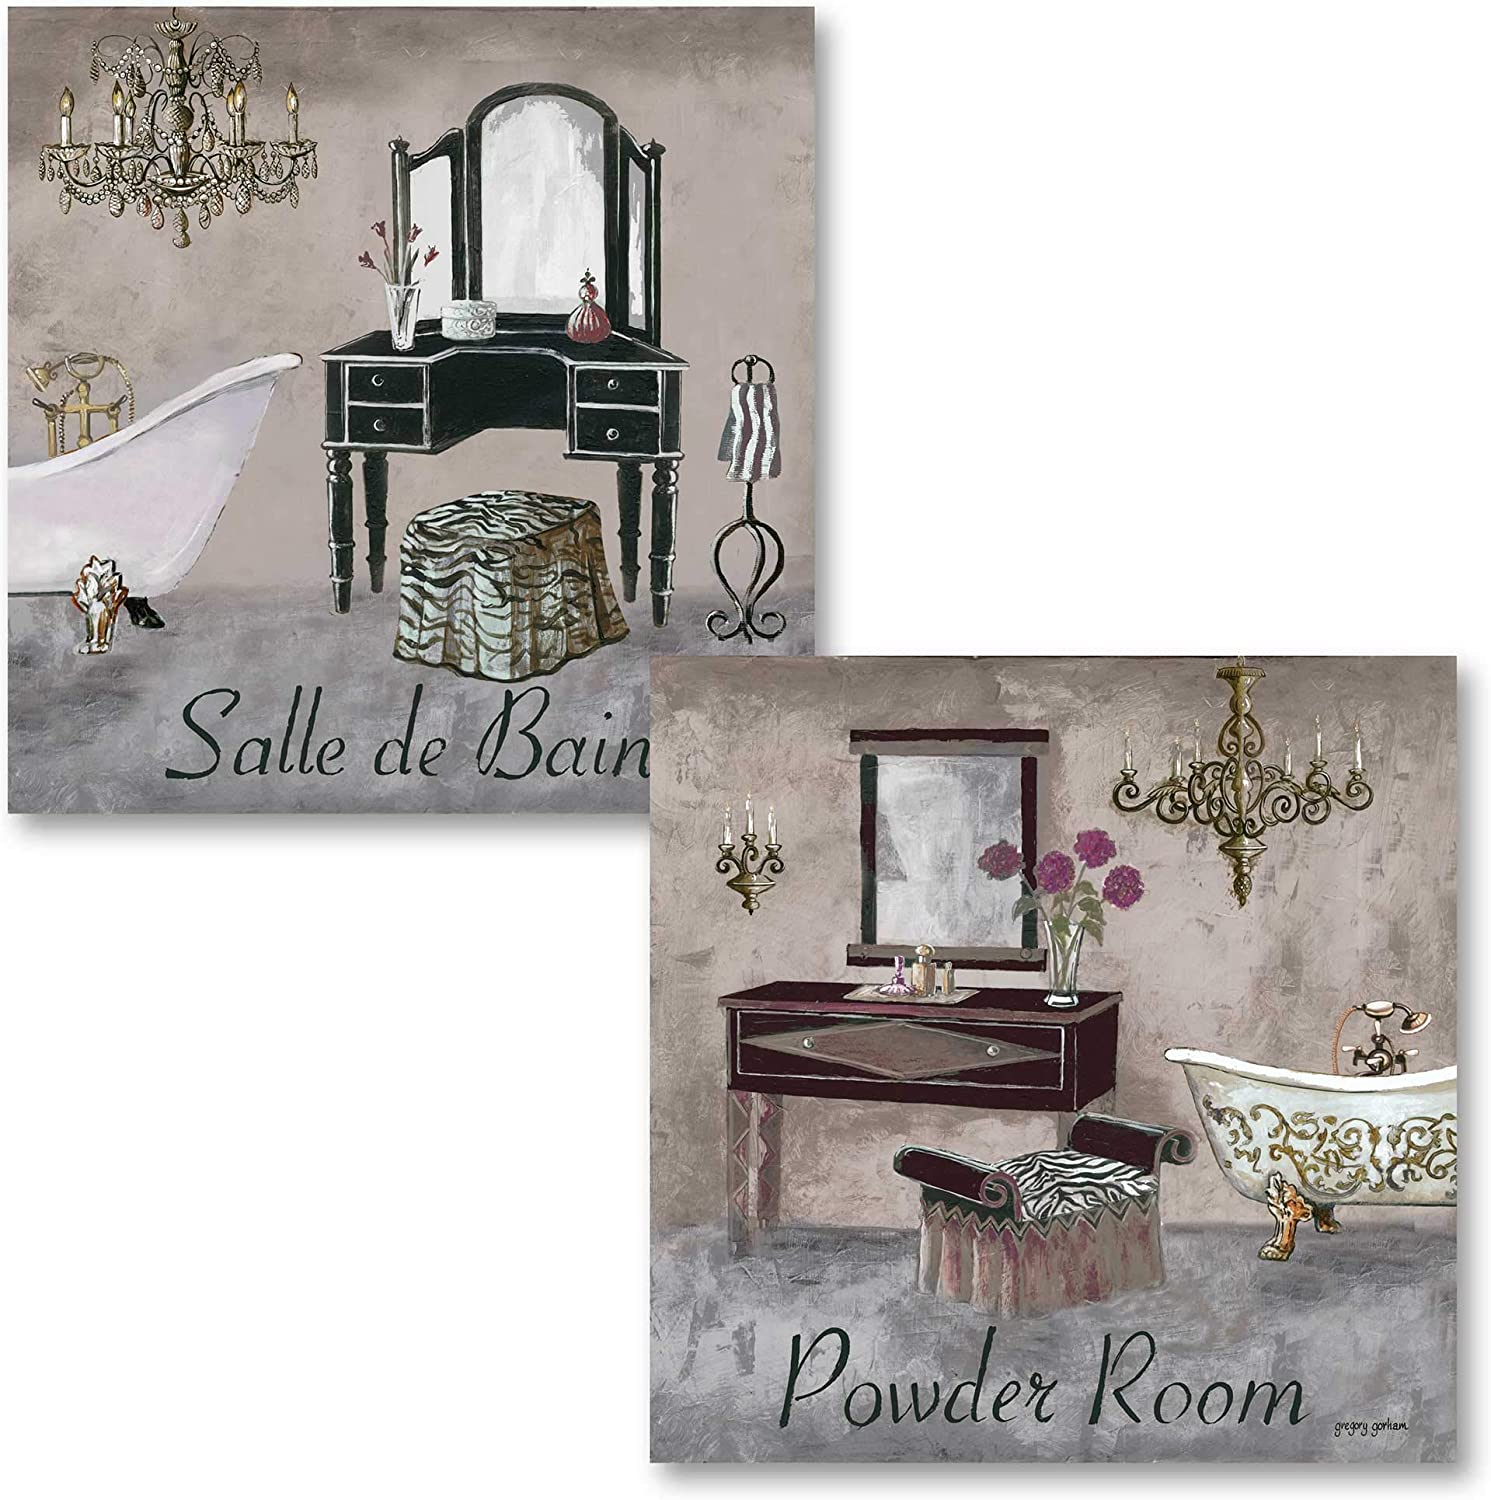 "Gango Home Decor's Bathroom Collection - Gray, Brown and Black French Vanity Mirror and Powder Room Art by Greg Gorham; 2-12x12"" Unframed Paper Posters"